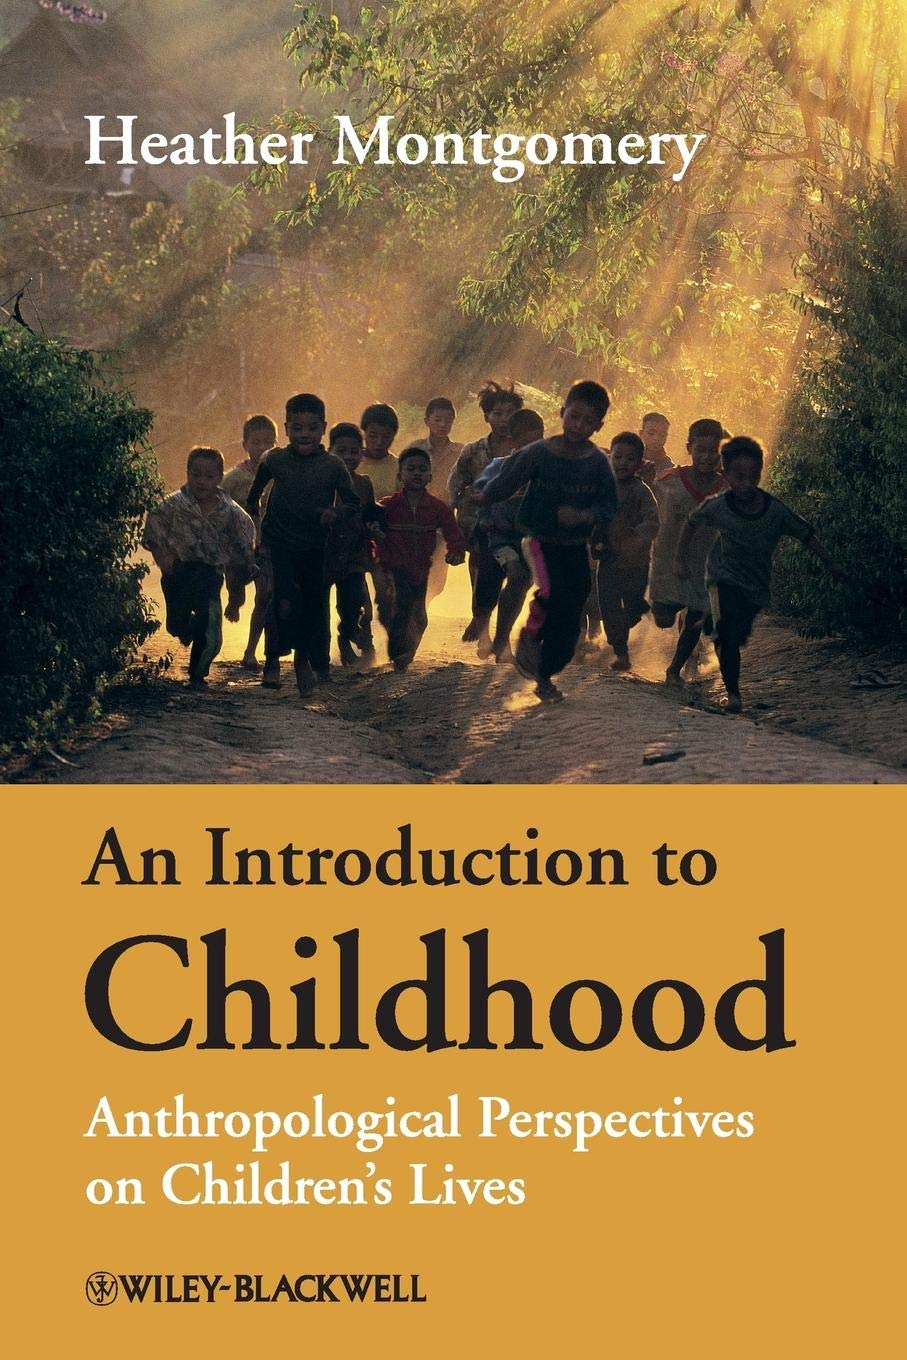 An Introduction To Childhood  Anthropological Perspectives On Children's Lives